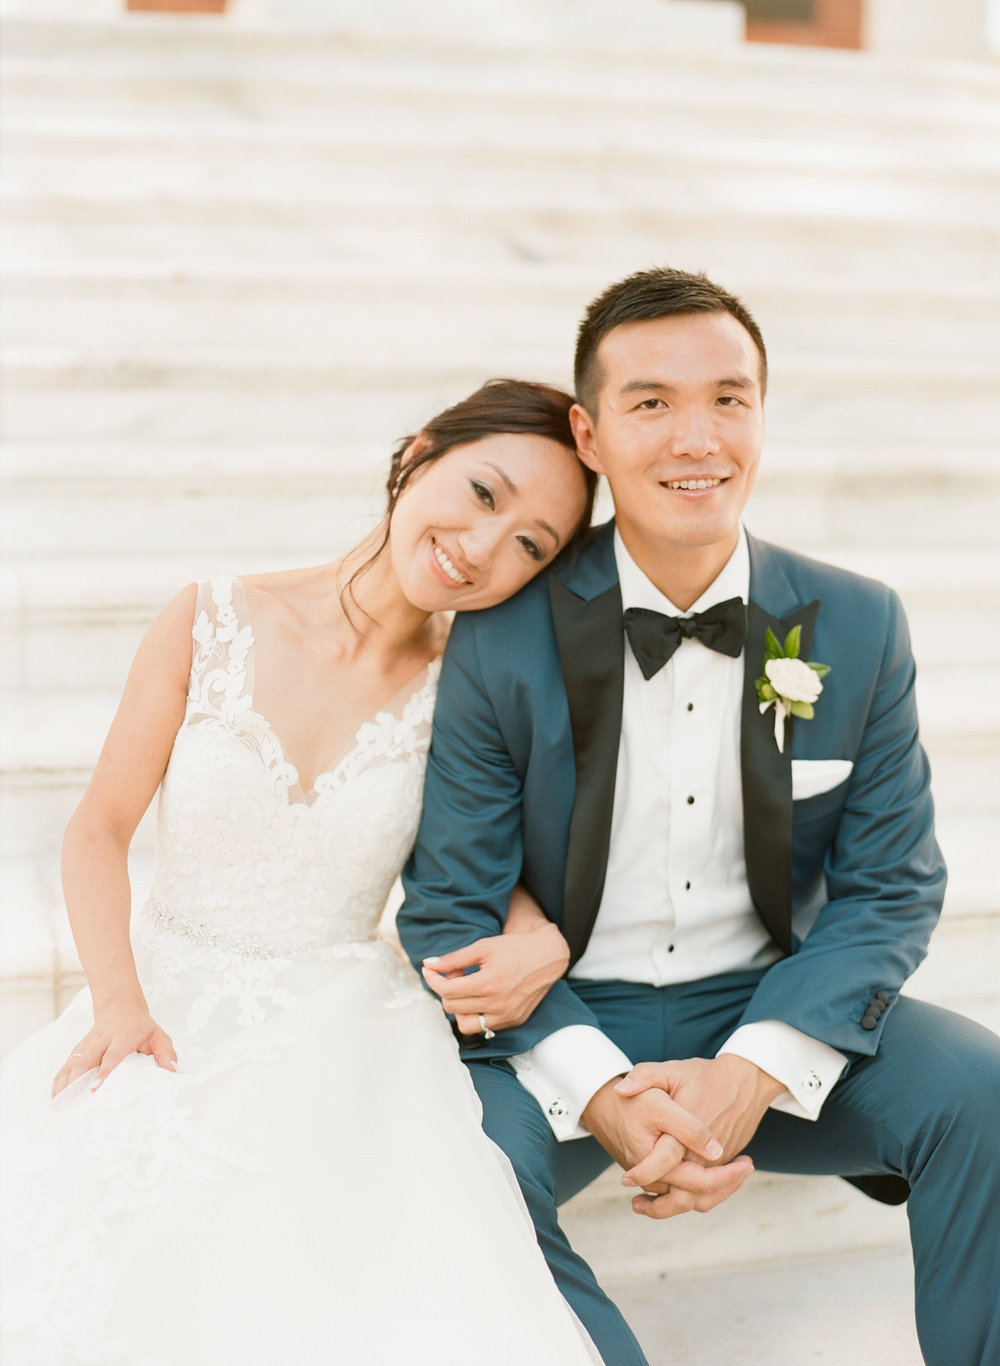 Wanxin_Paul_Wedding(27of54).jpg